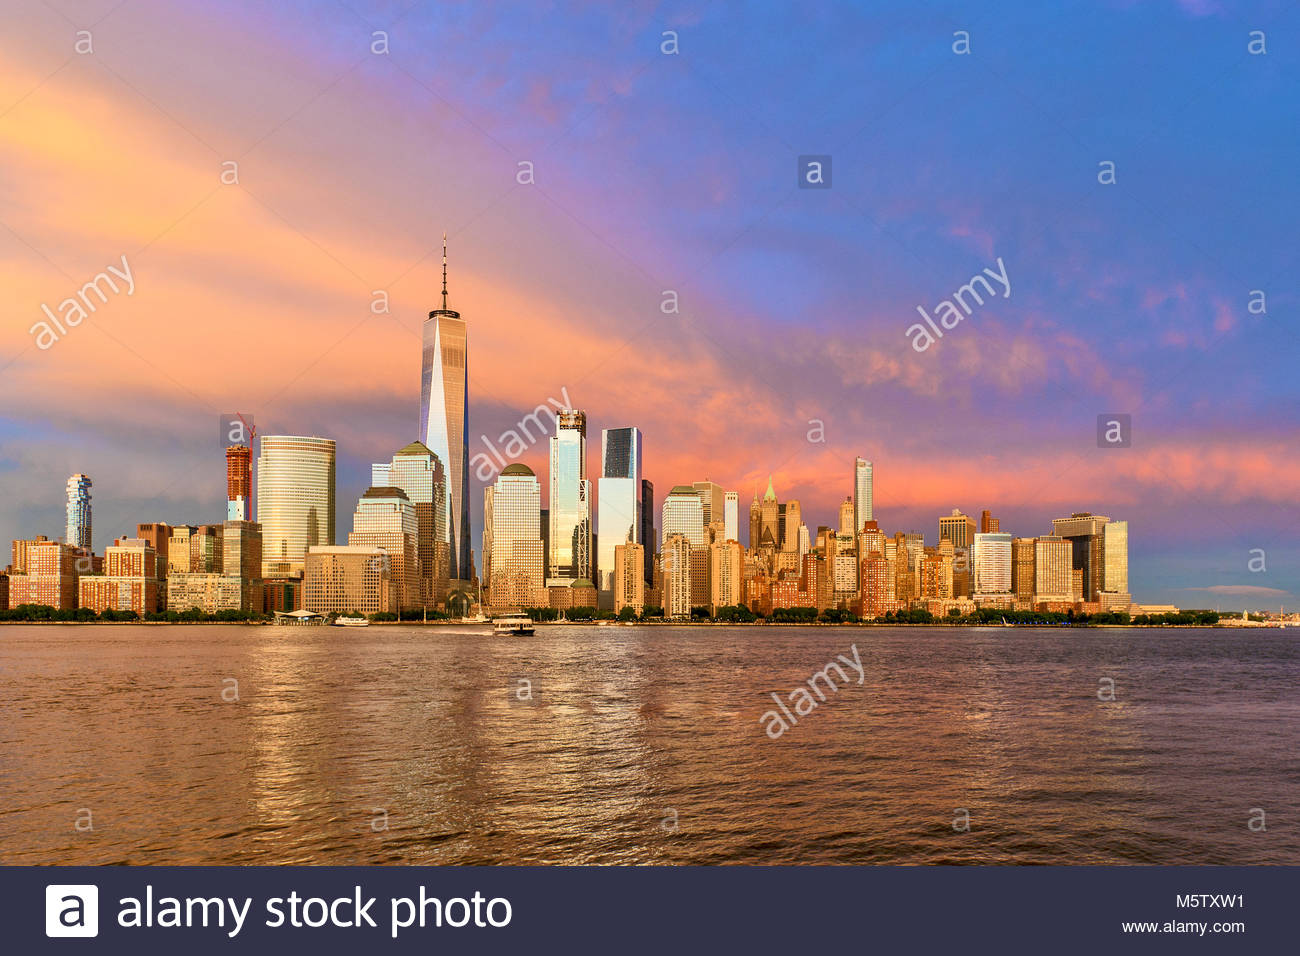 New York Skyline One World Trade Center WTC Freedom Tower - Stock Image